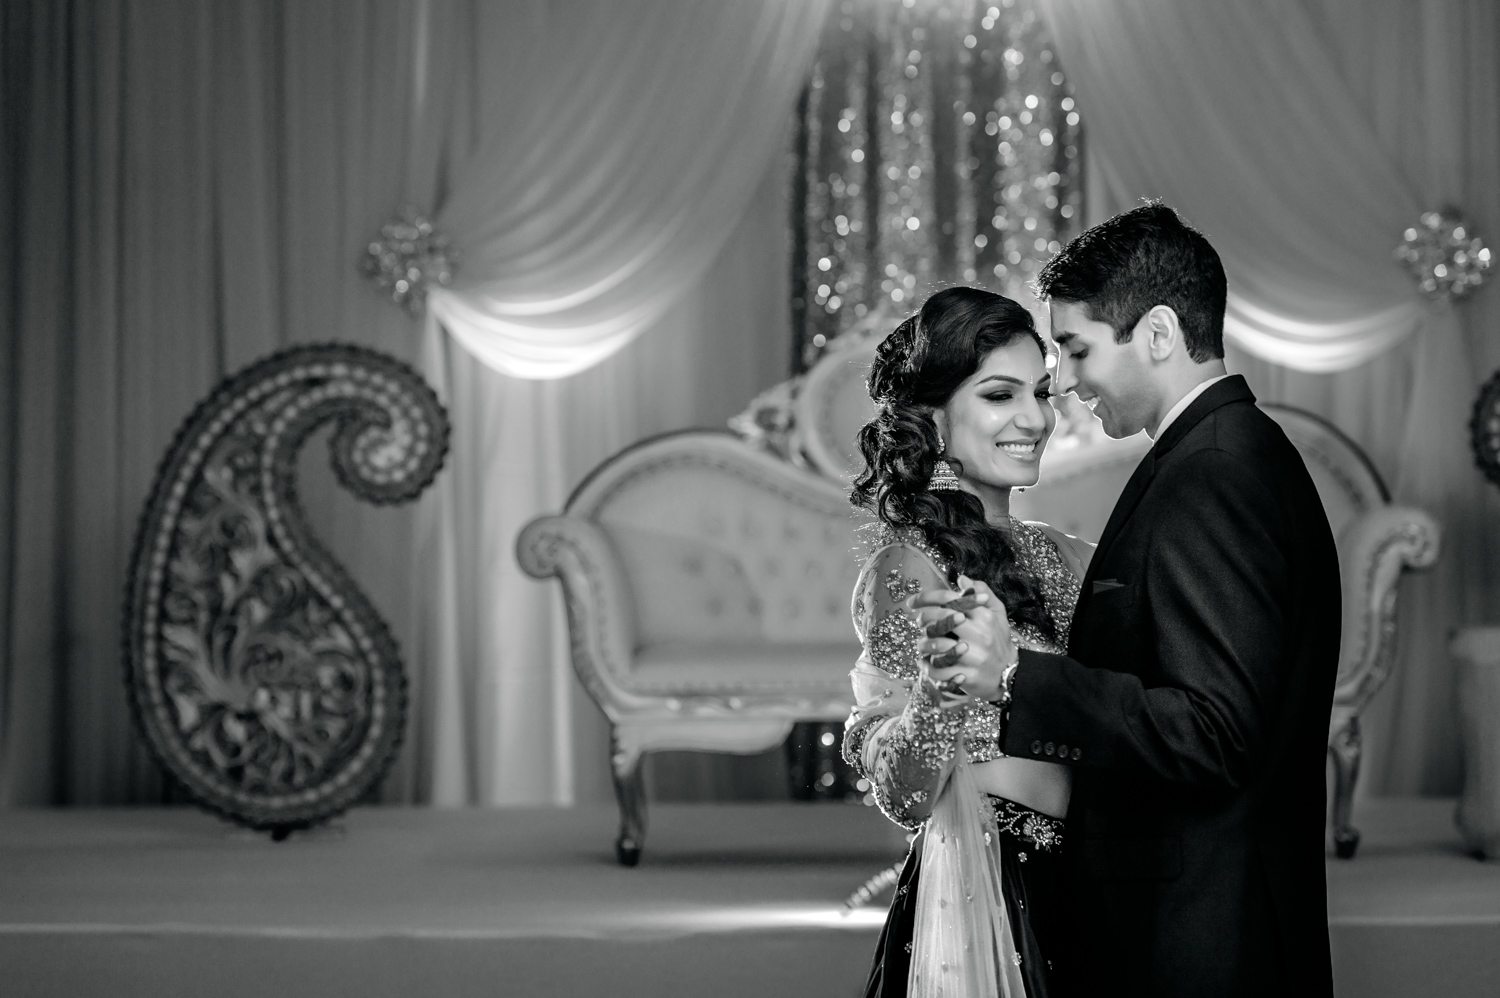 First dance at Indian wedding